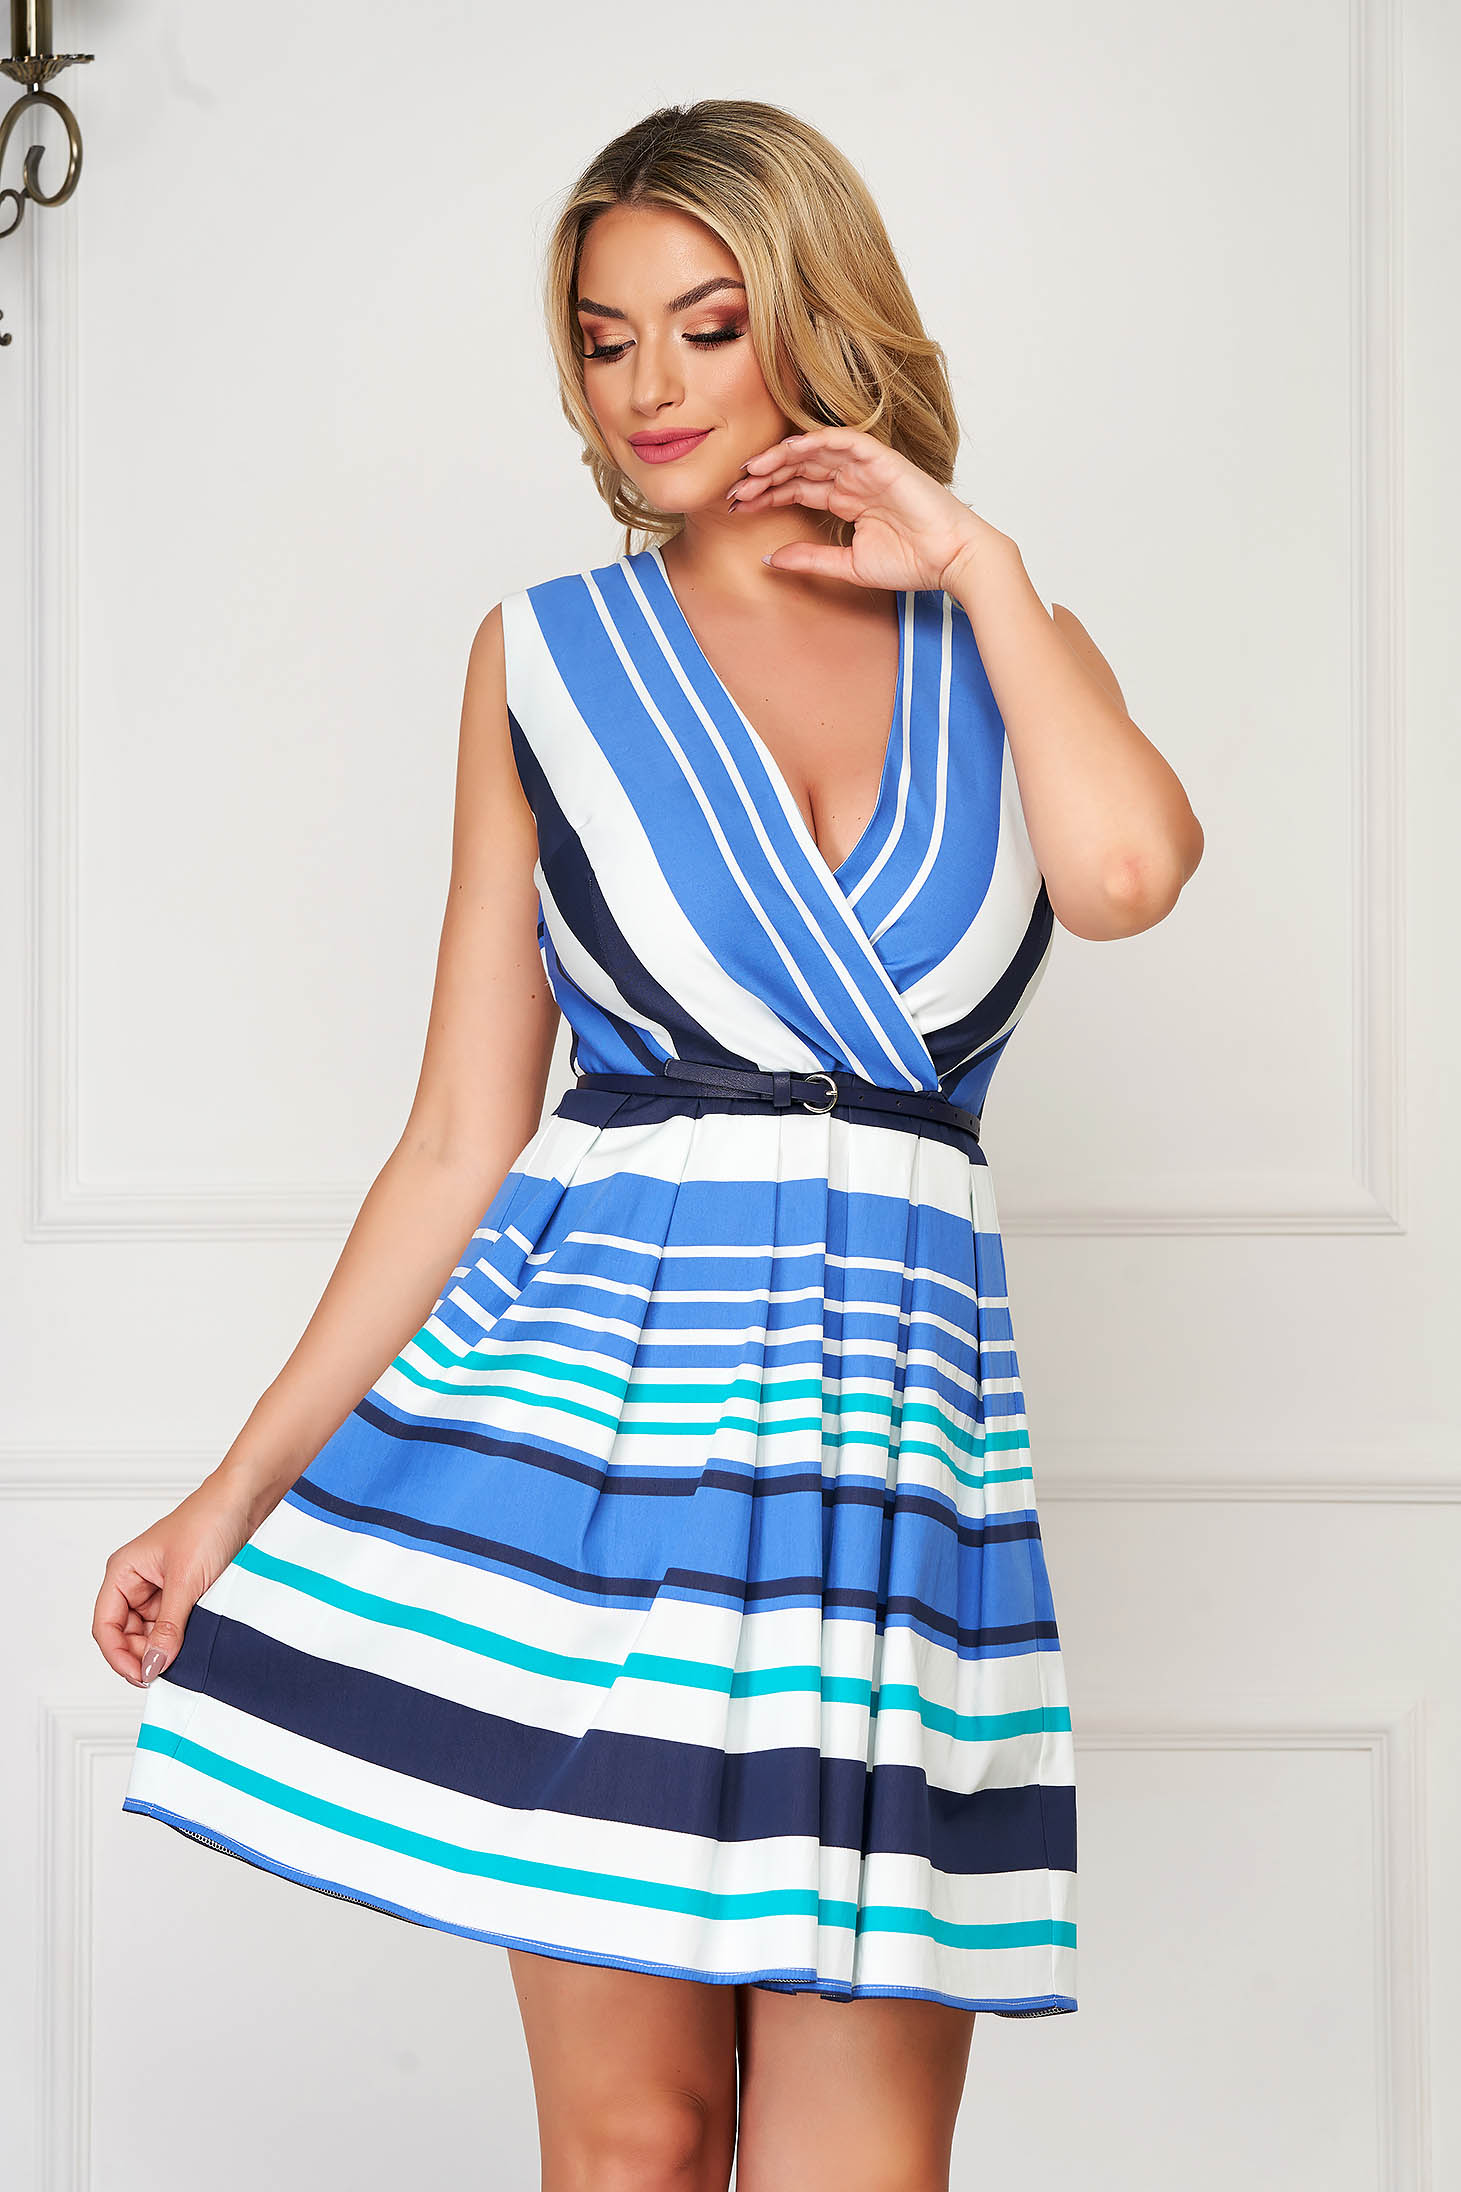 Dress blue daily short cut flaring cut nonelastic fabric with stripes